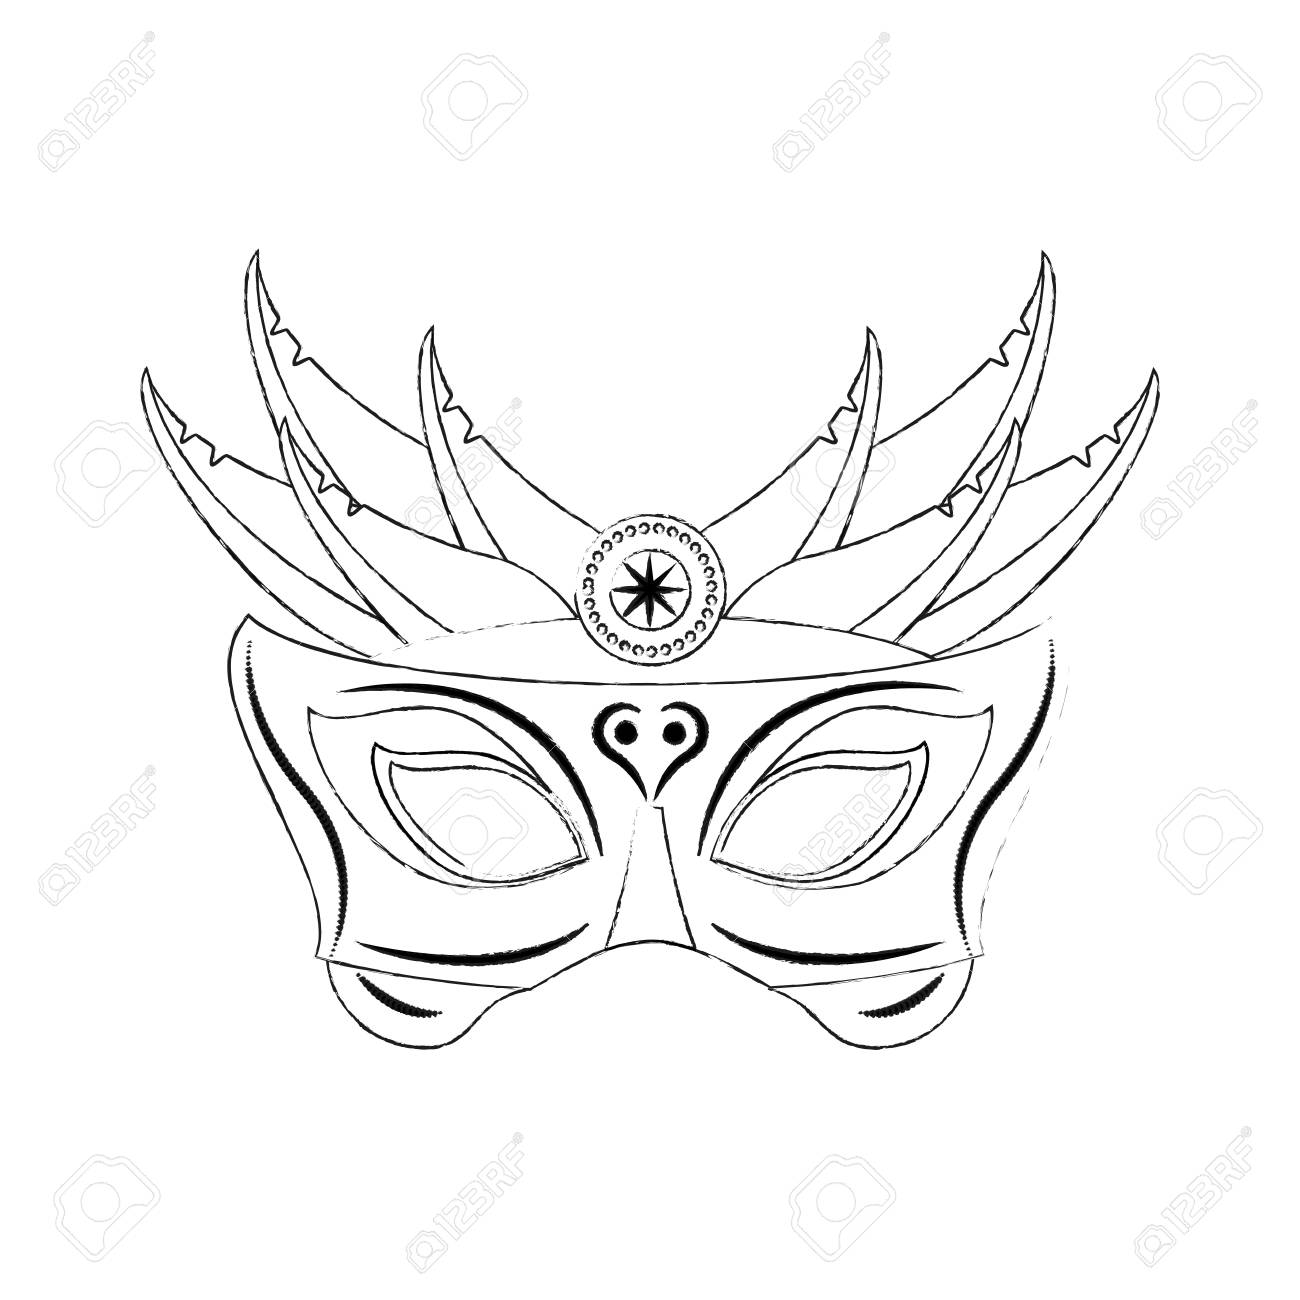 mardi gras mask icon vector illustration graphic design royalty free